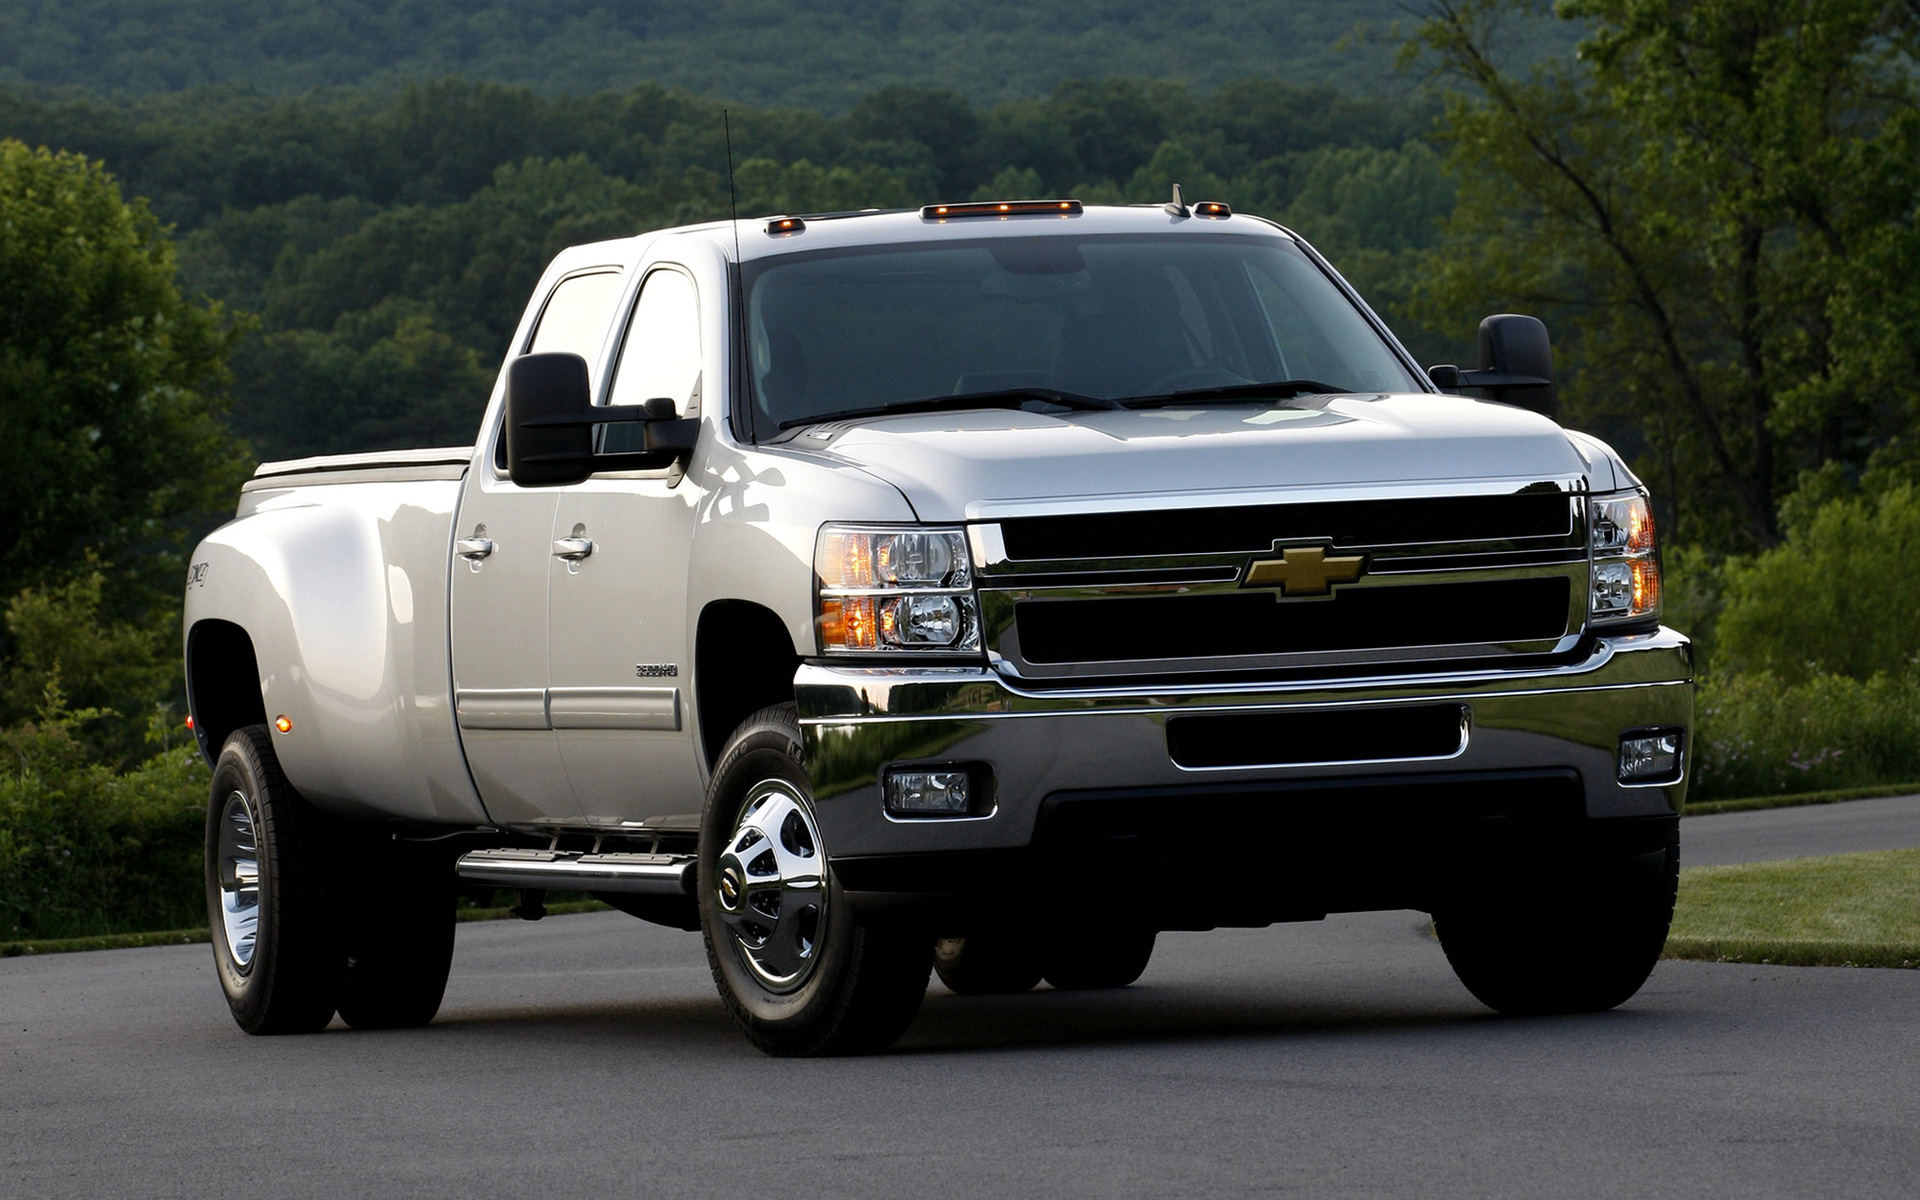 2010 Chevrolet Silverado 3500 HD Crew Cab - Wallpapers and HD Images | Car Pixel